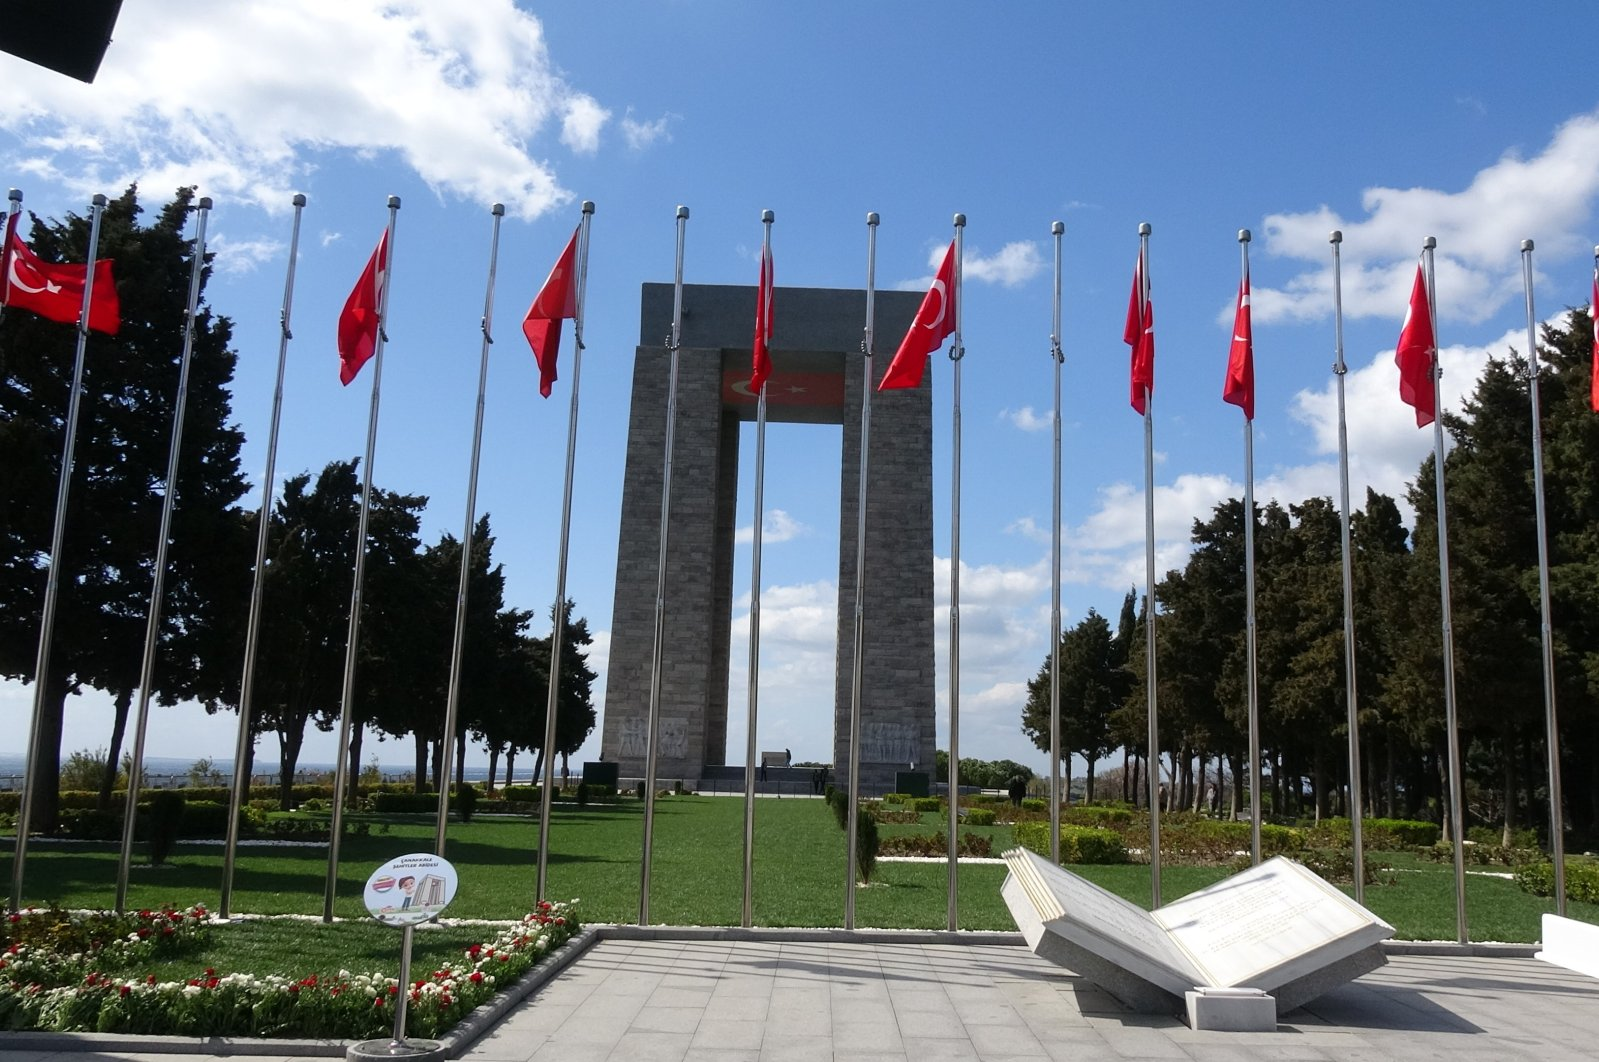 Martyrs' Memorial is seen behind Turkish flags, Wednesday, March 18, 2020, in Çanakkale. The memorial on Hisarlık hill, one of the battlefields during the campaign, is situated next to a cemetery for fallen soldiers. (İHA Photo)